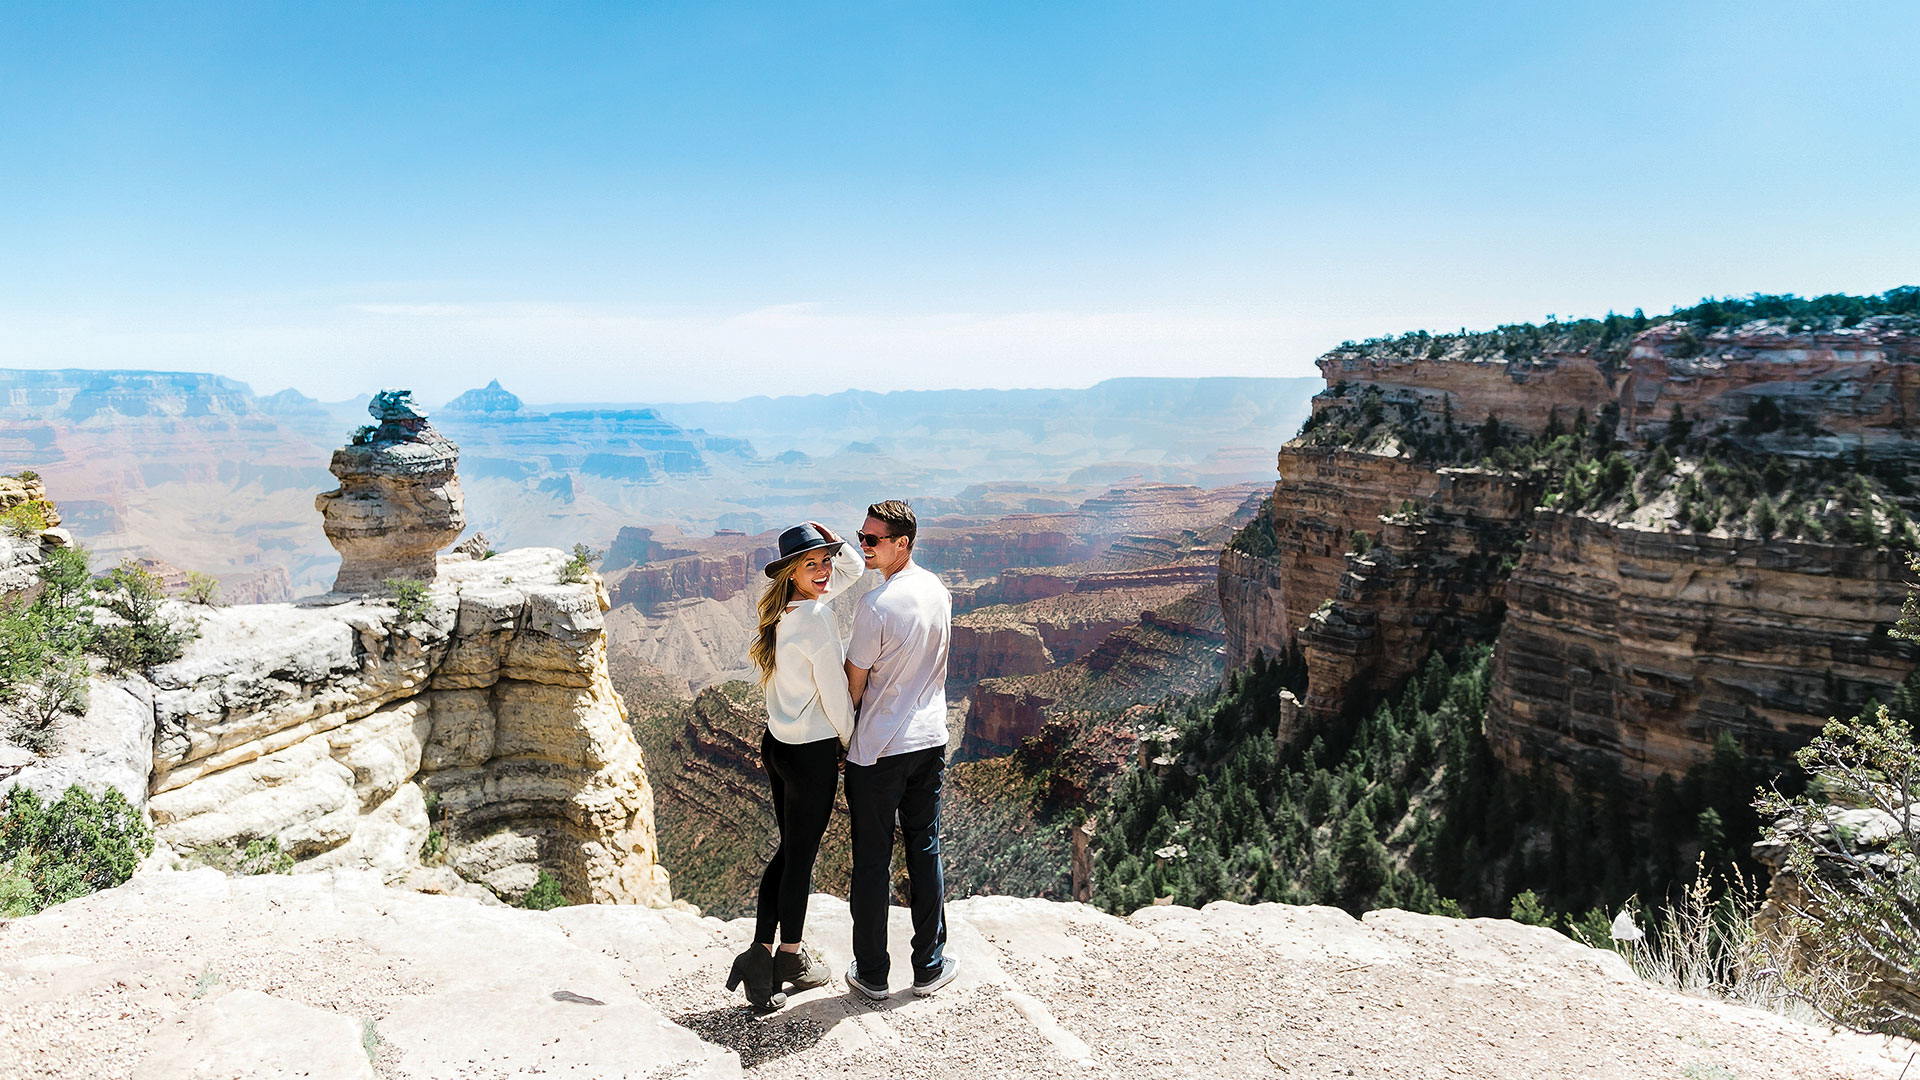 A couple poses at the edge of a Grand Canyon lookout point.